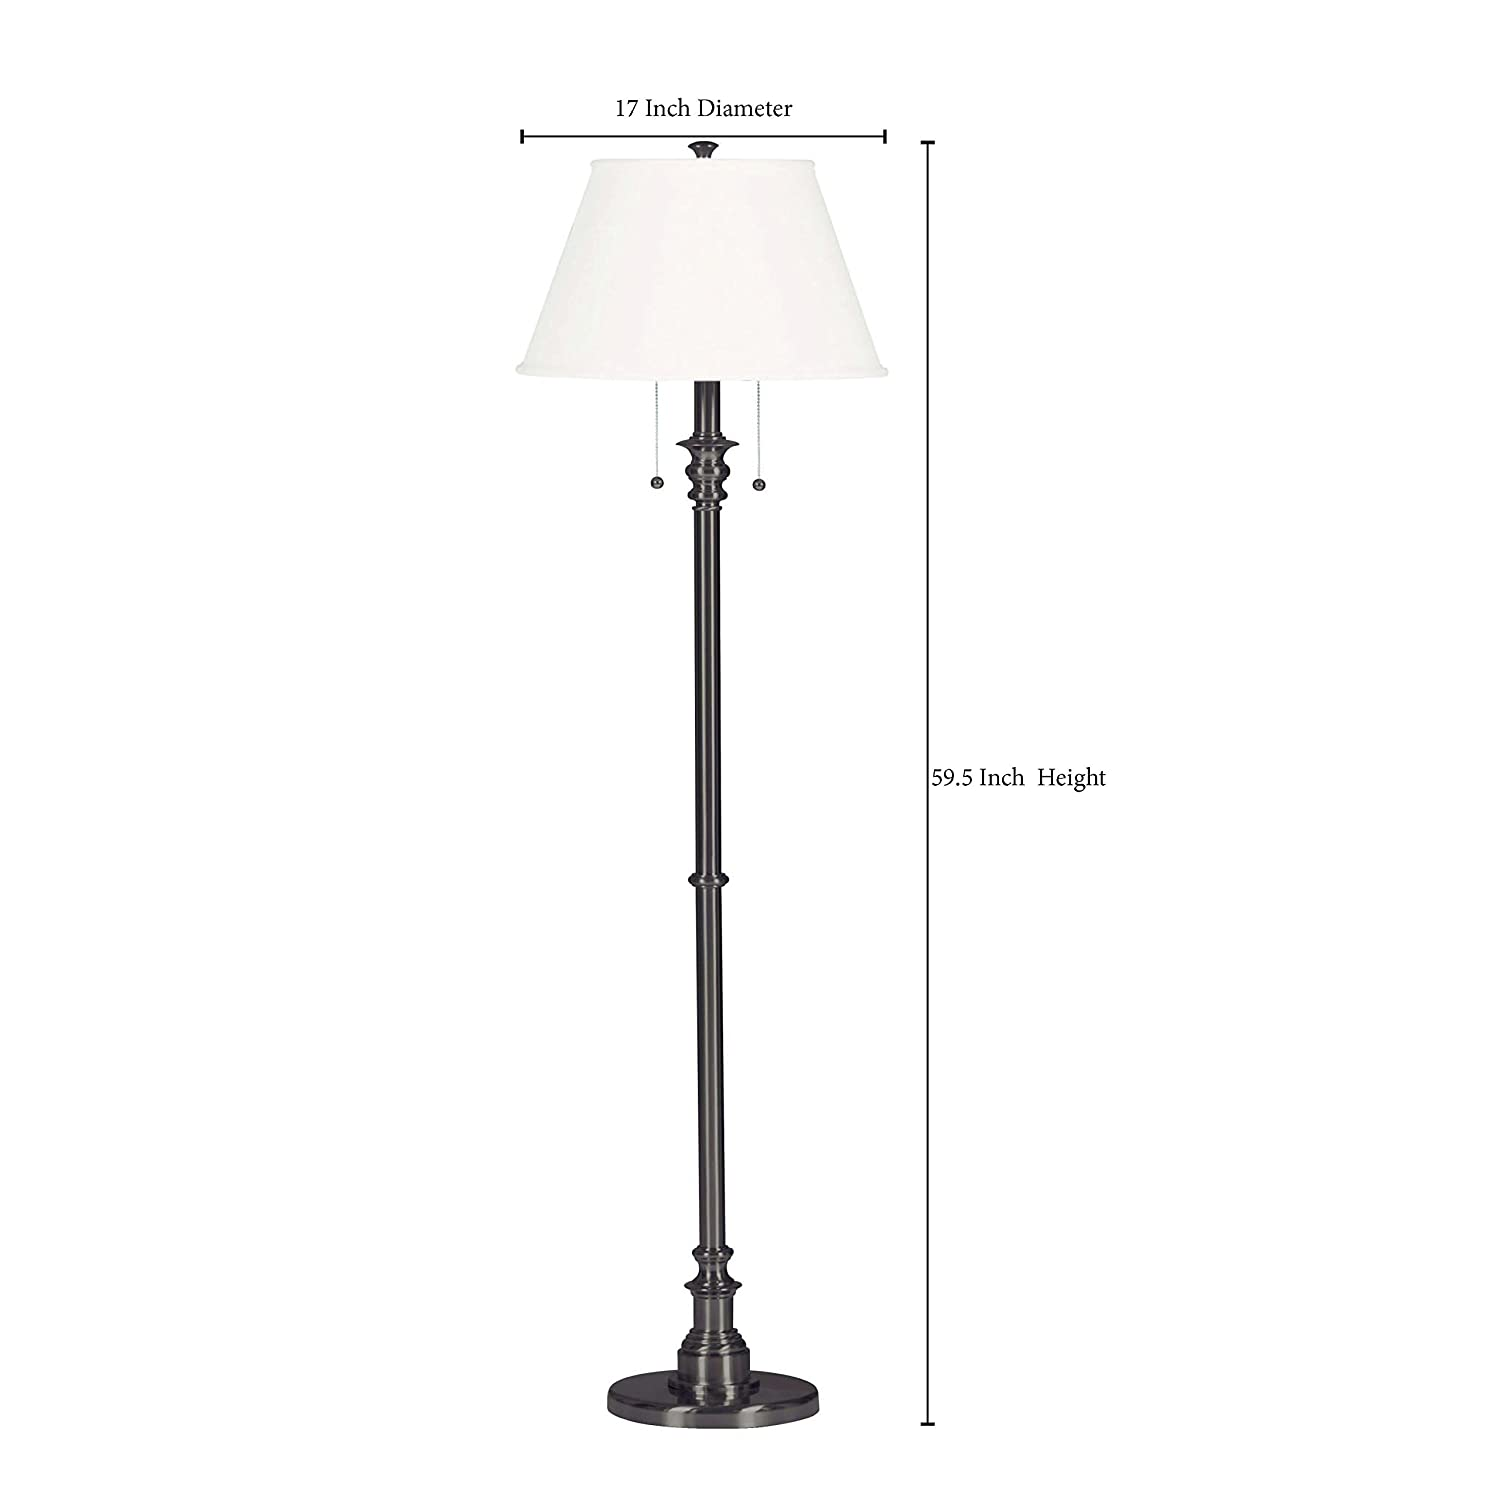 Kenroy home 30438brz spyglass floor lamp bronze amazon solutioingenieria Images